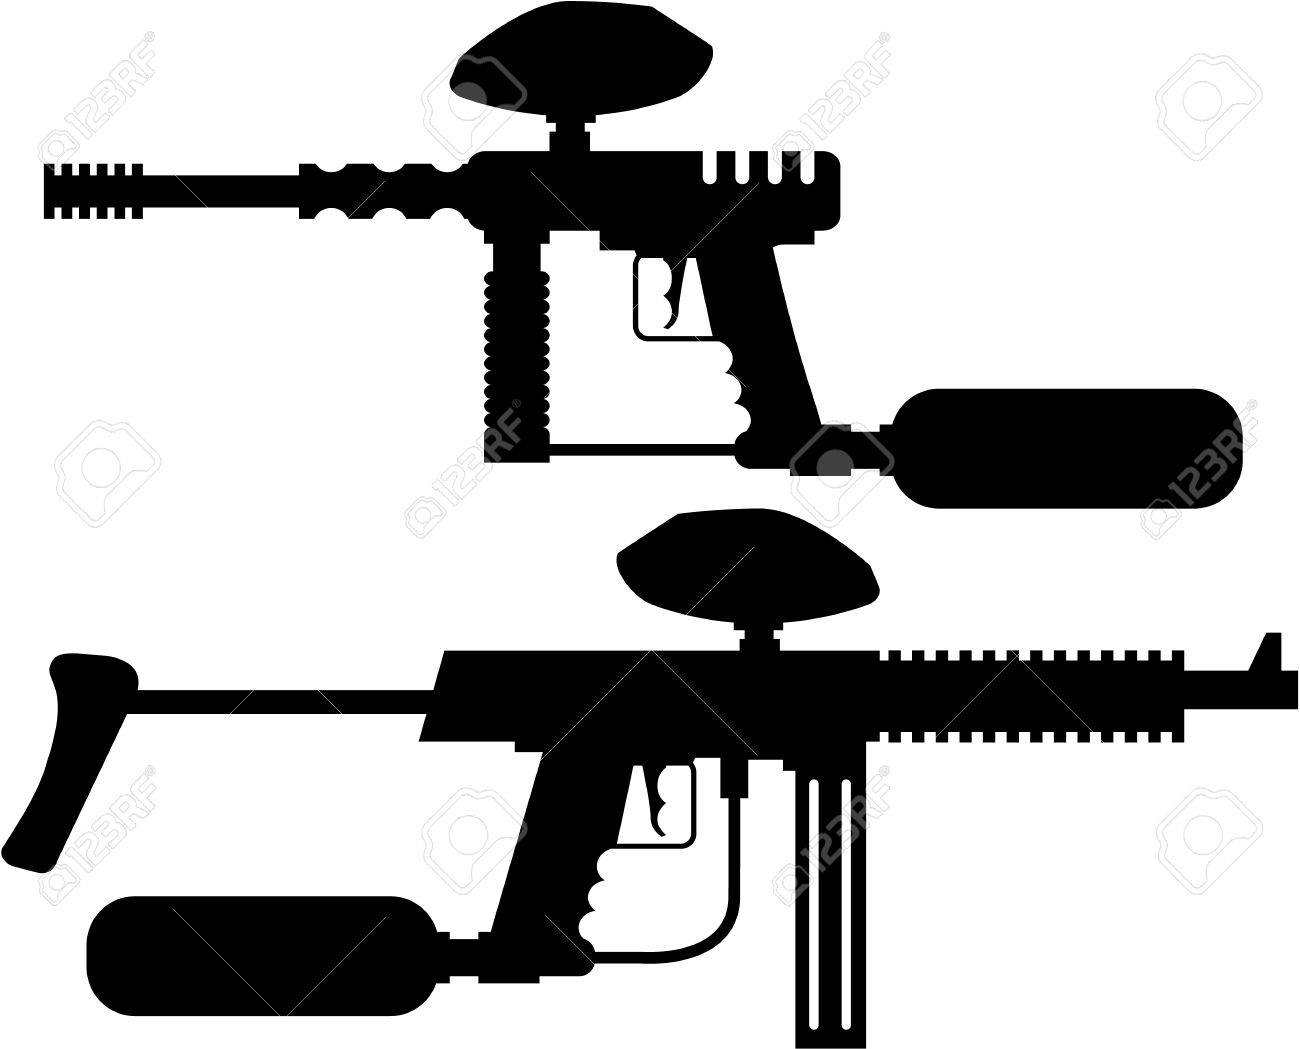 Paintball Gun Illustration Clip Art Image Royalty Free Cliparts Vectors And Stock Illustration Image 67756789